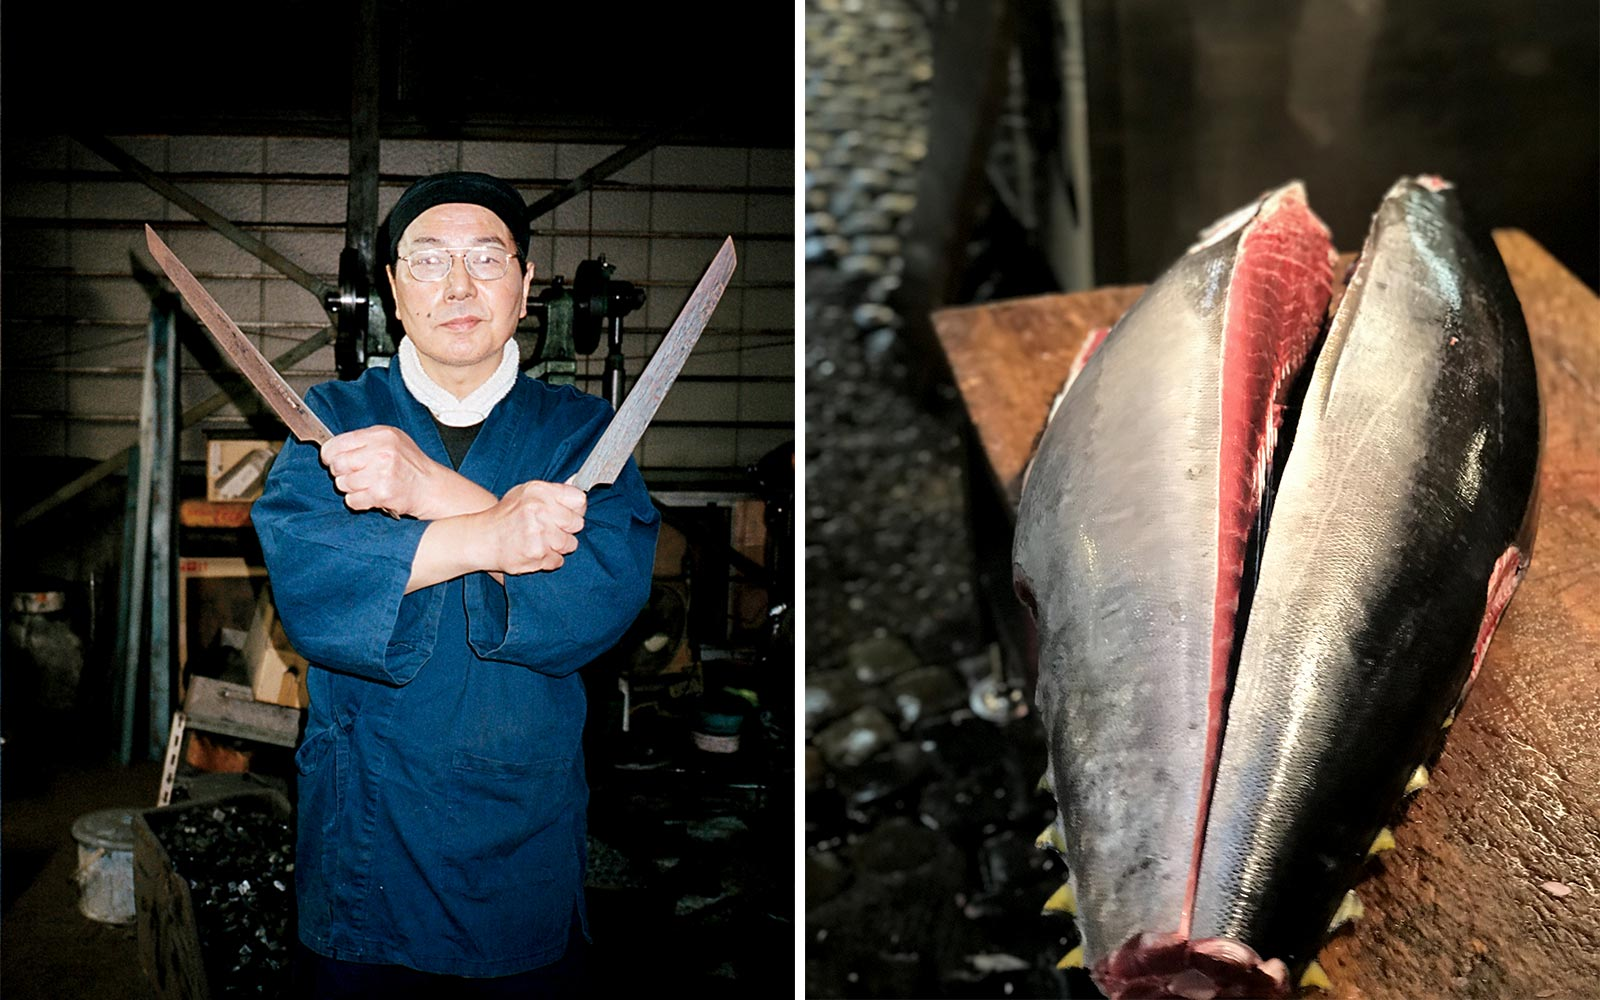 Knifemaker and fish in Japan